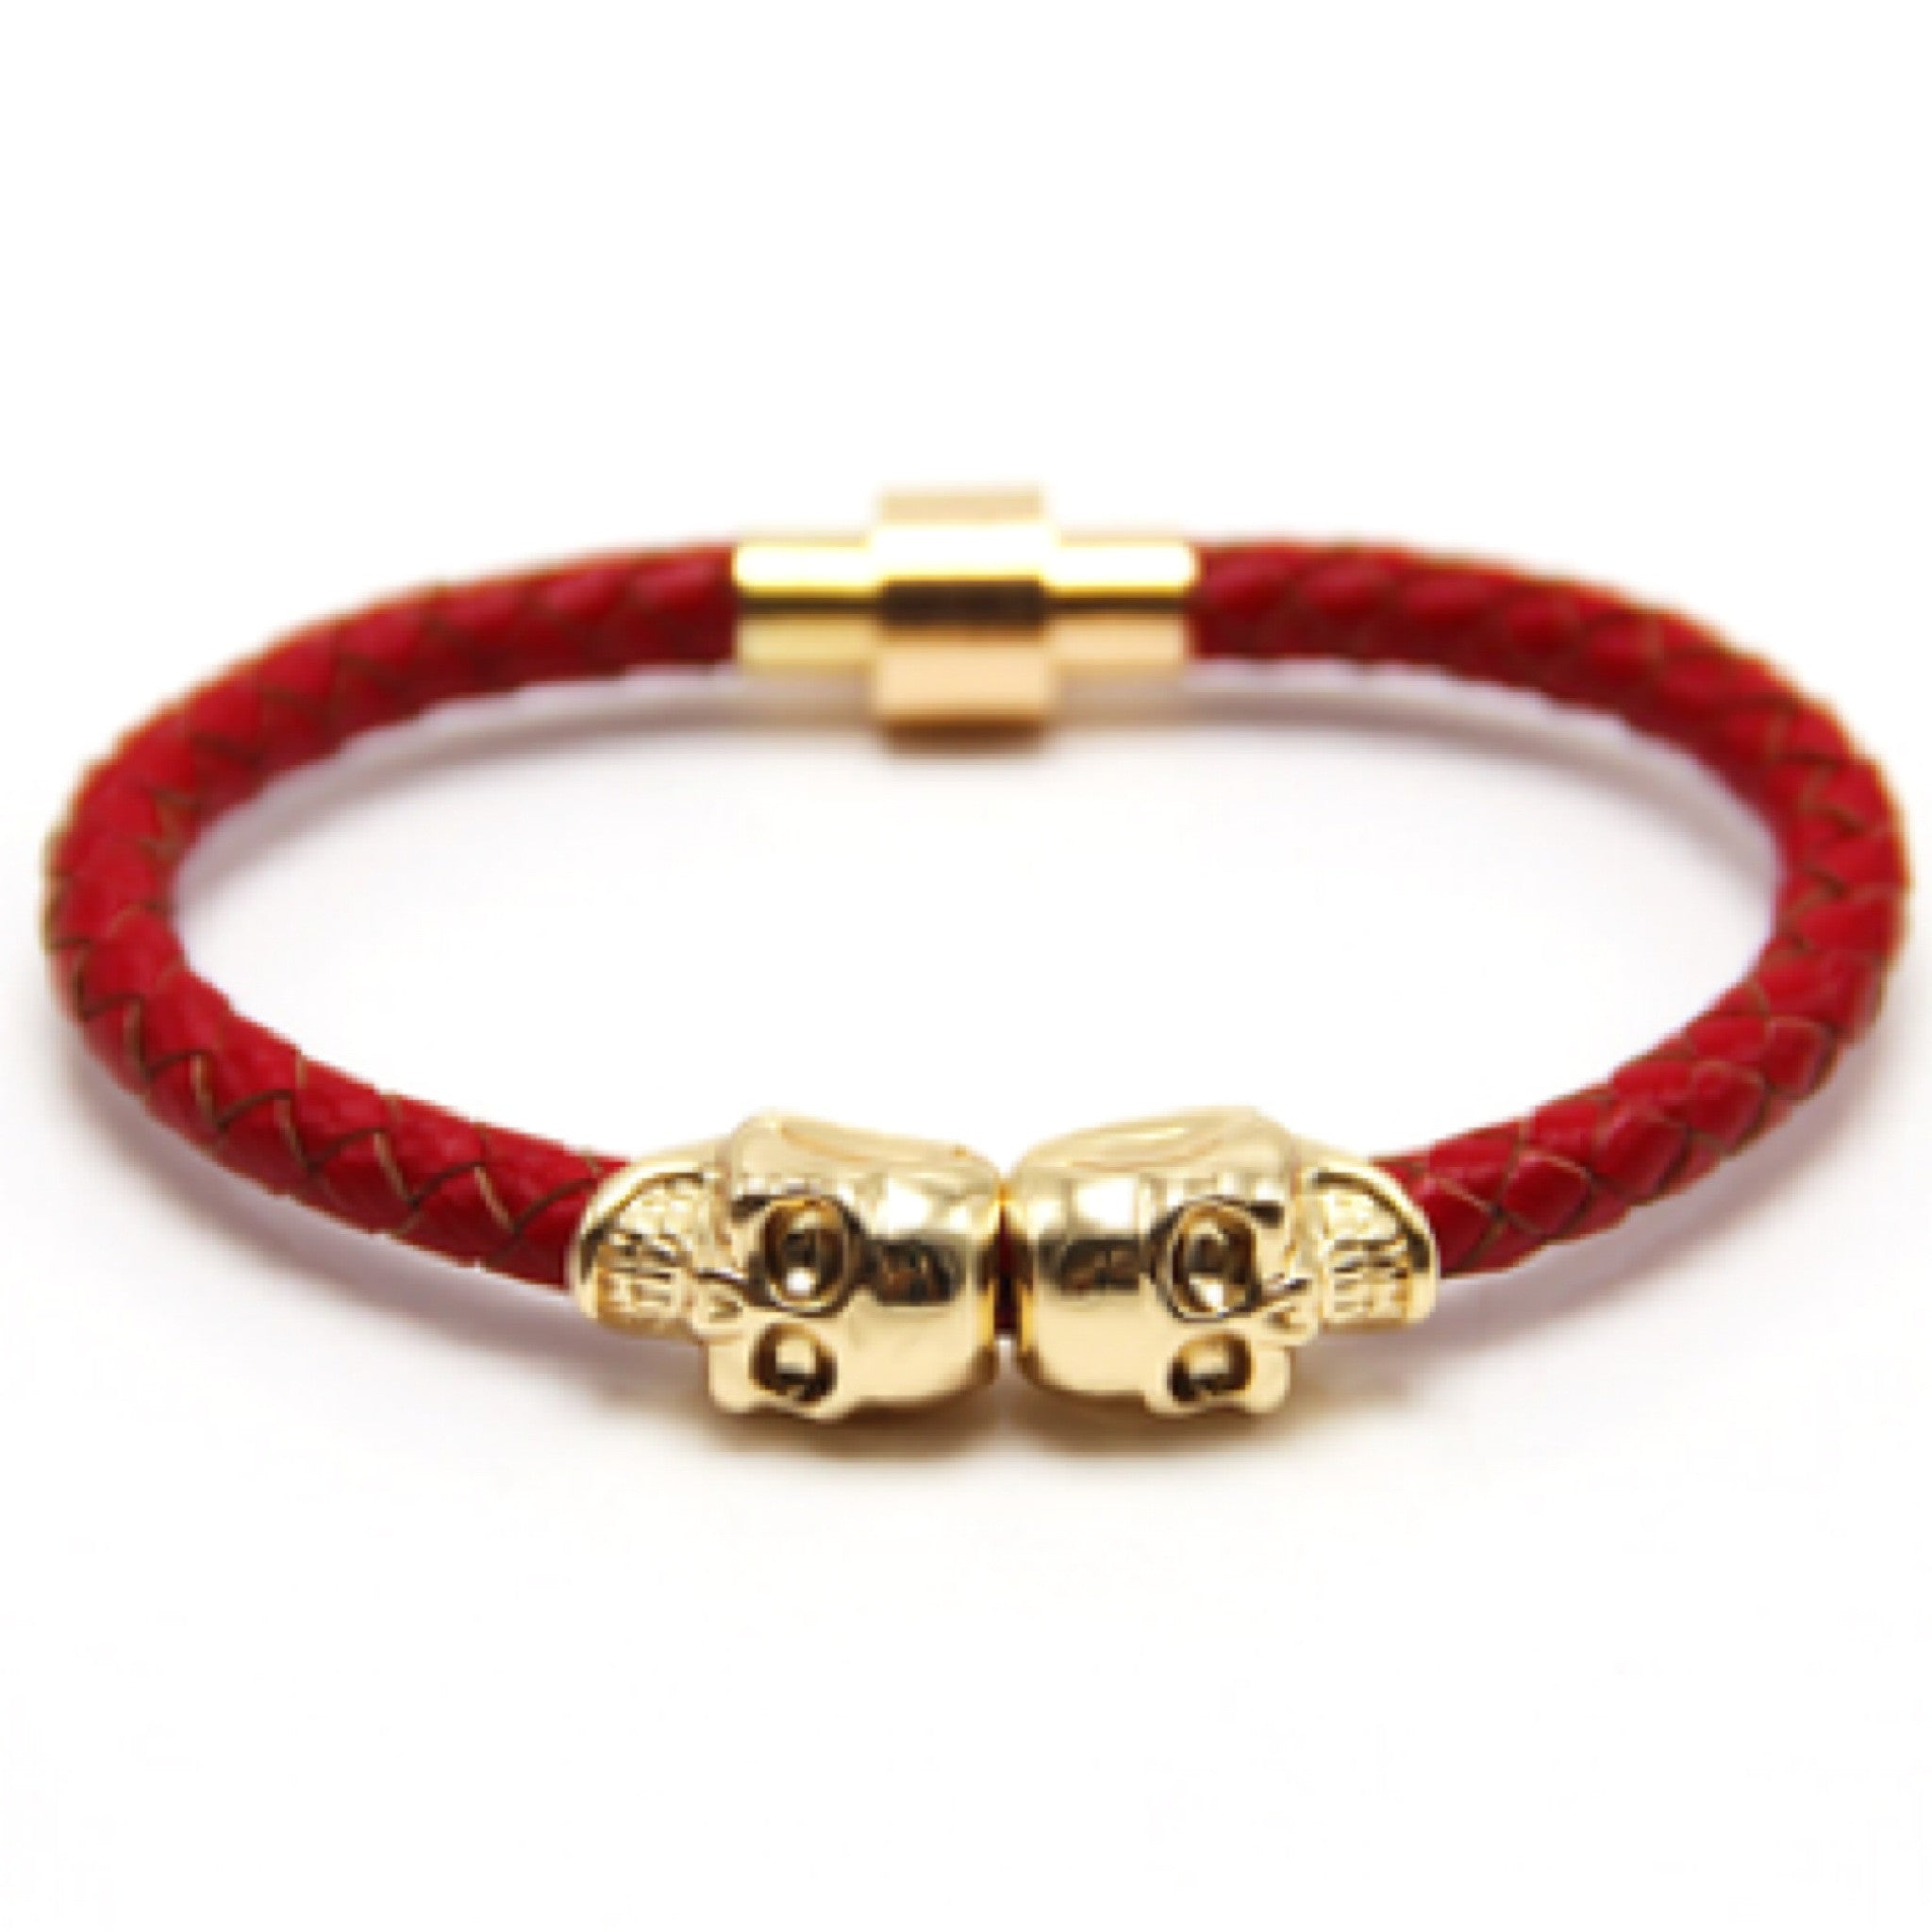 fine rose evil bracelets gold jewelry bracelet red over eye silver sterling